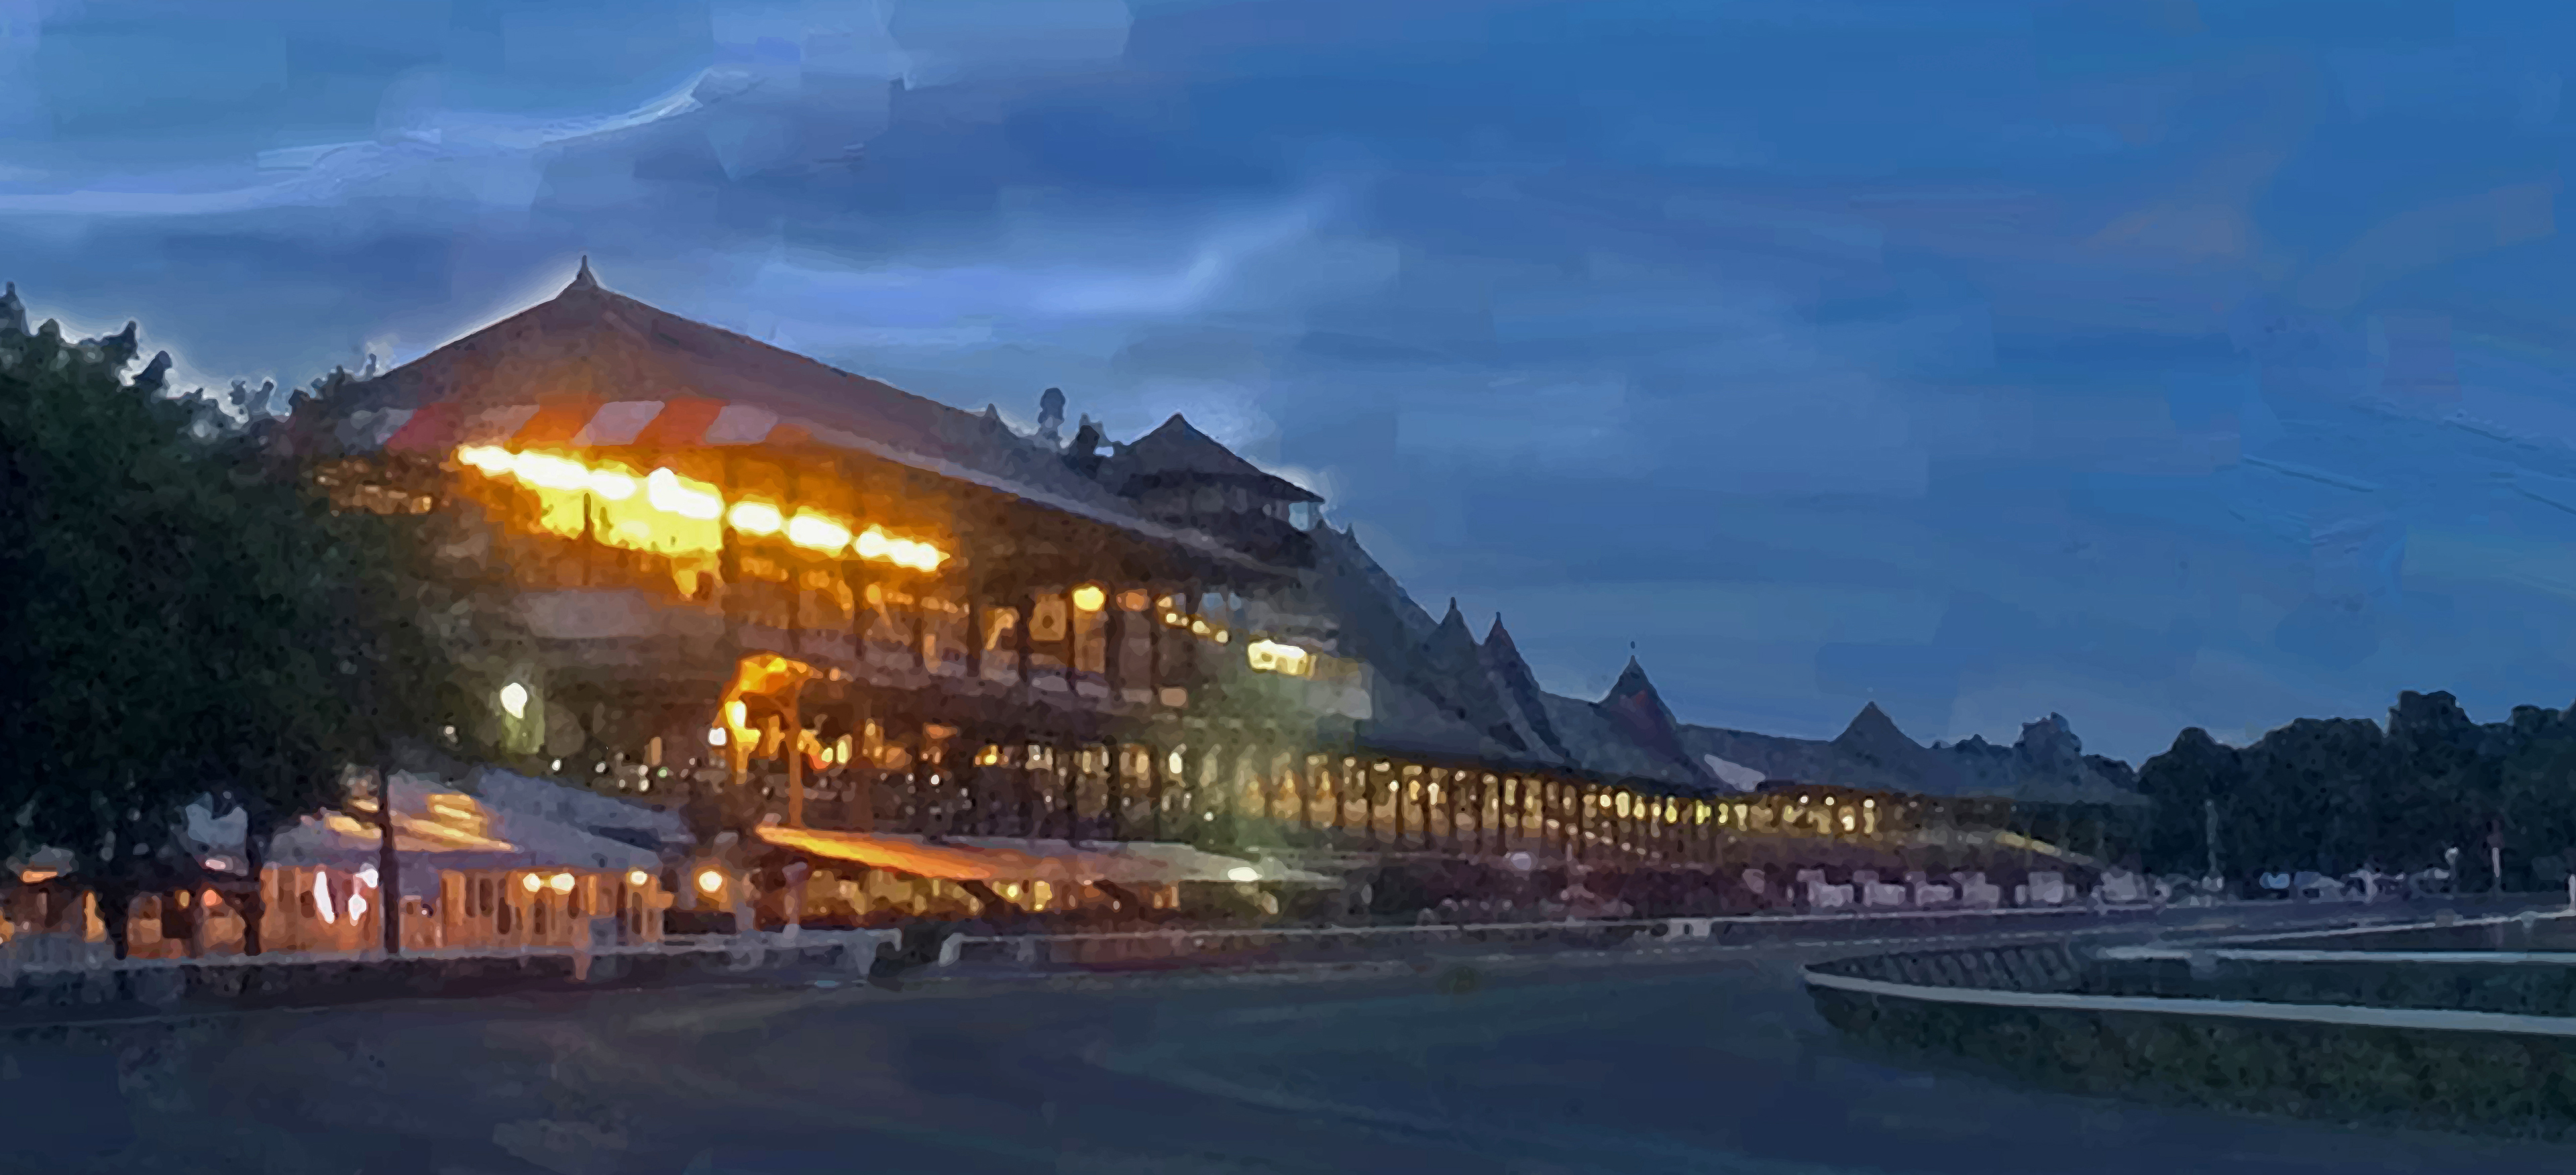 Dusk at the Spa